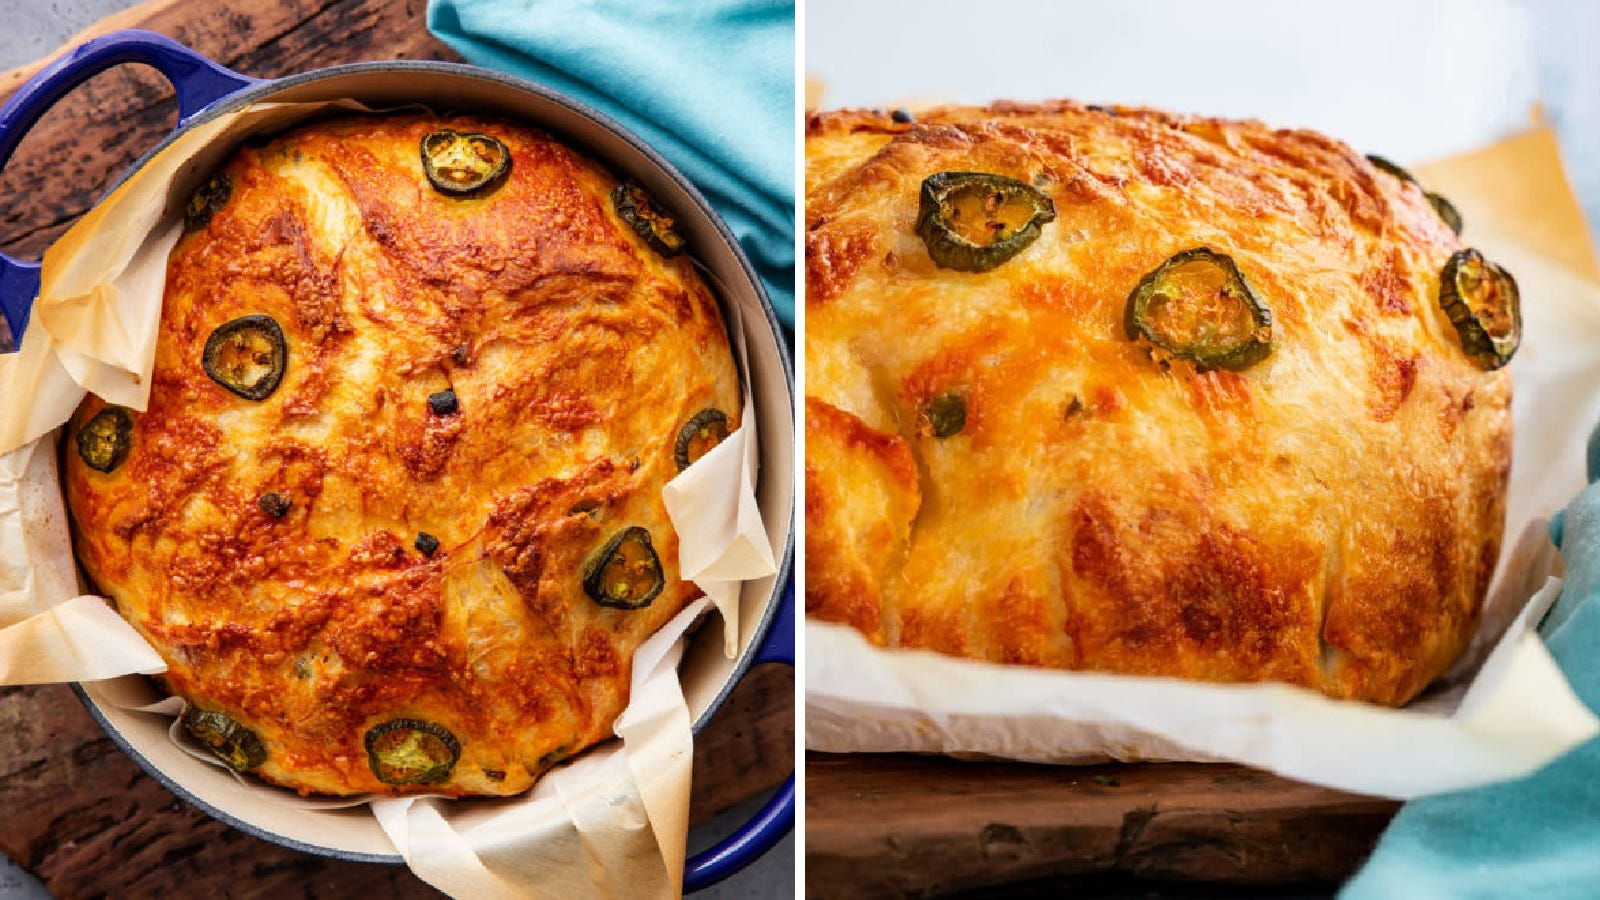 Two images of Jalapeno cheddar bread made in a Dutch oven by The Chunky Chef.